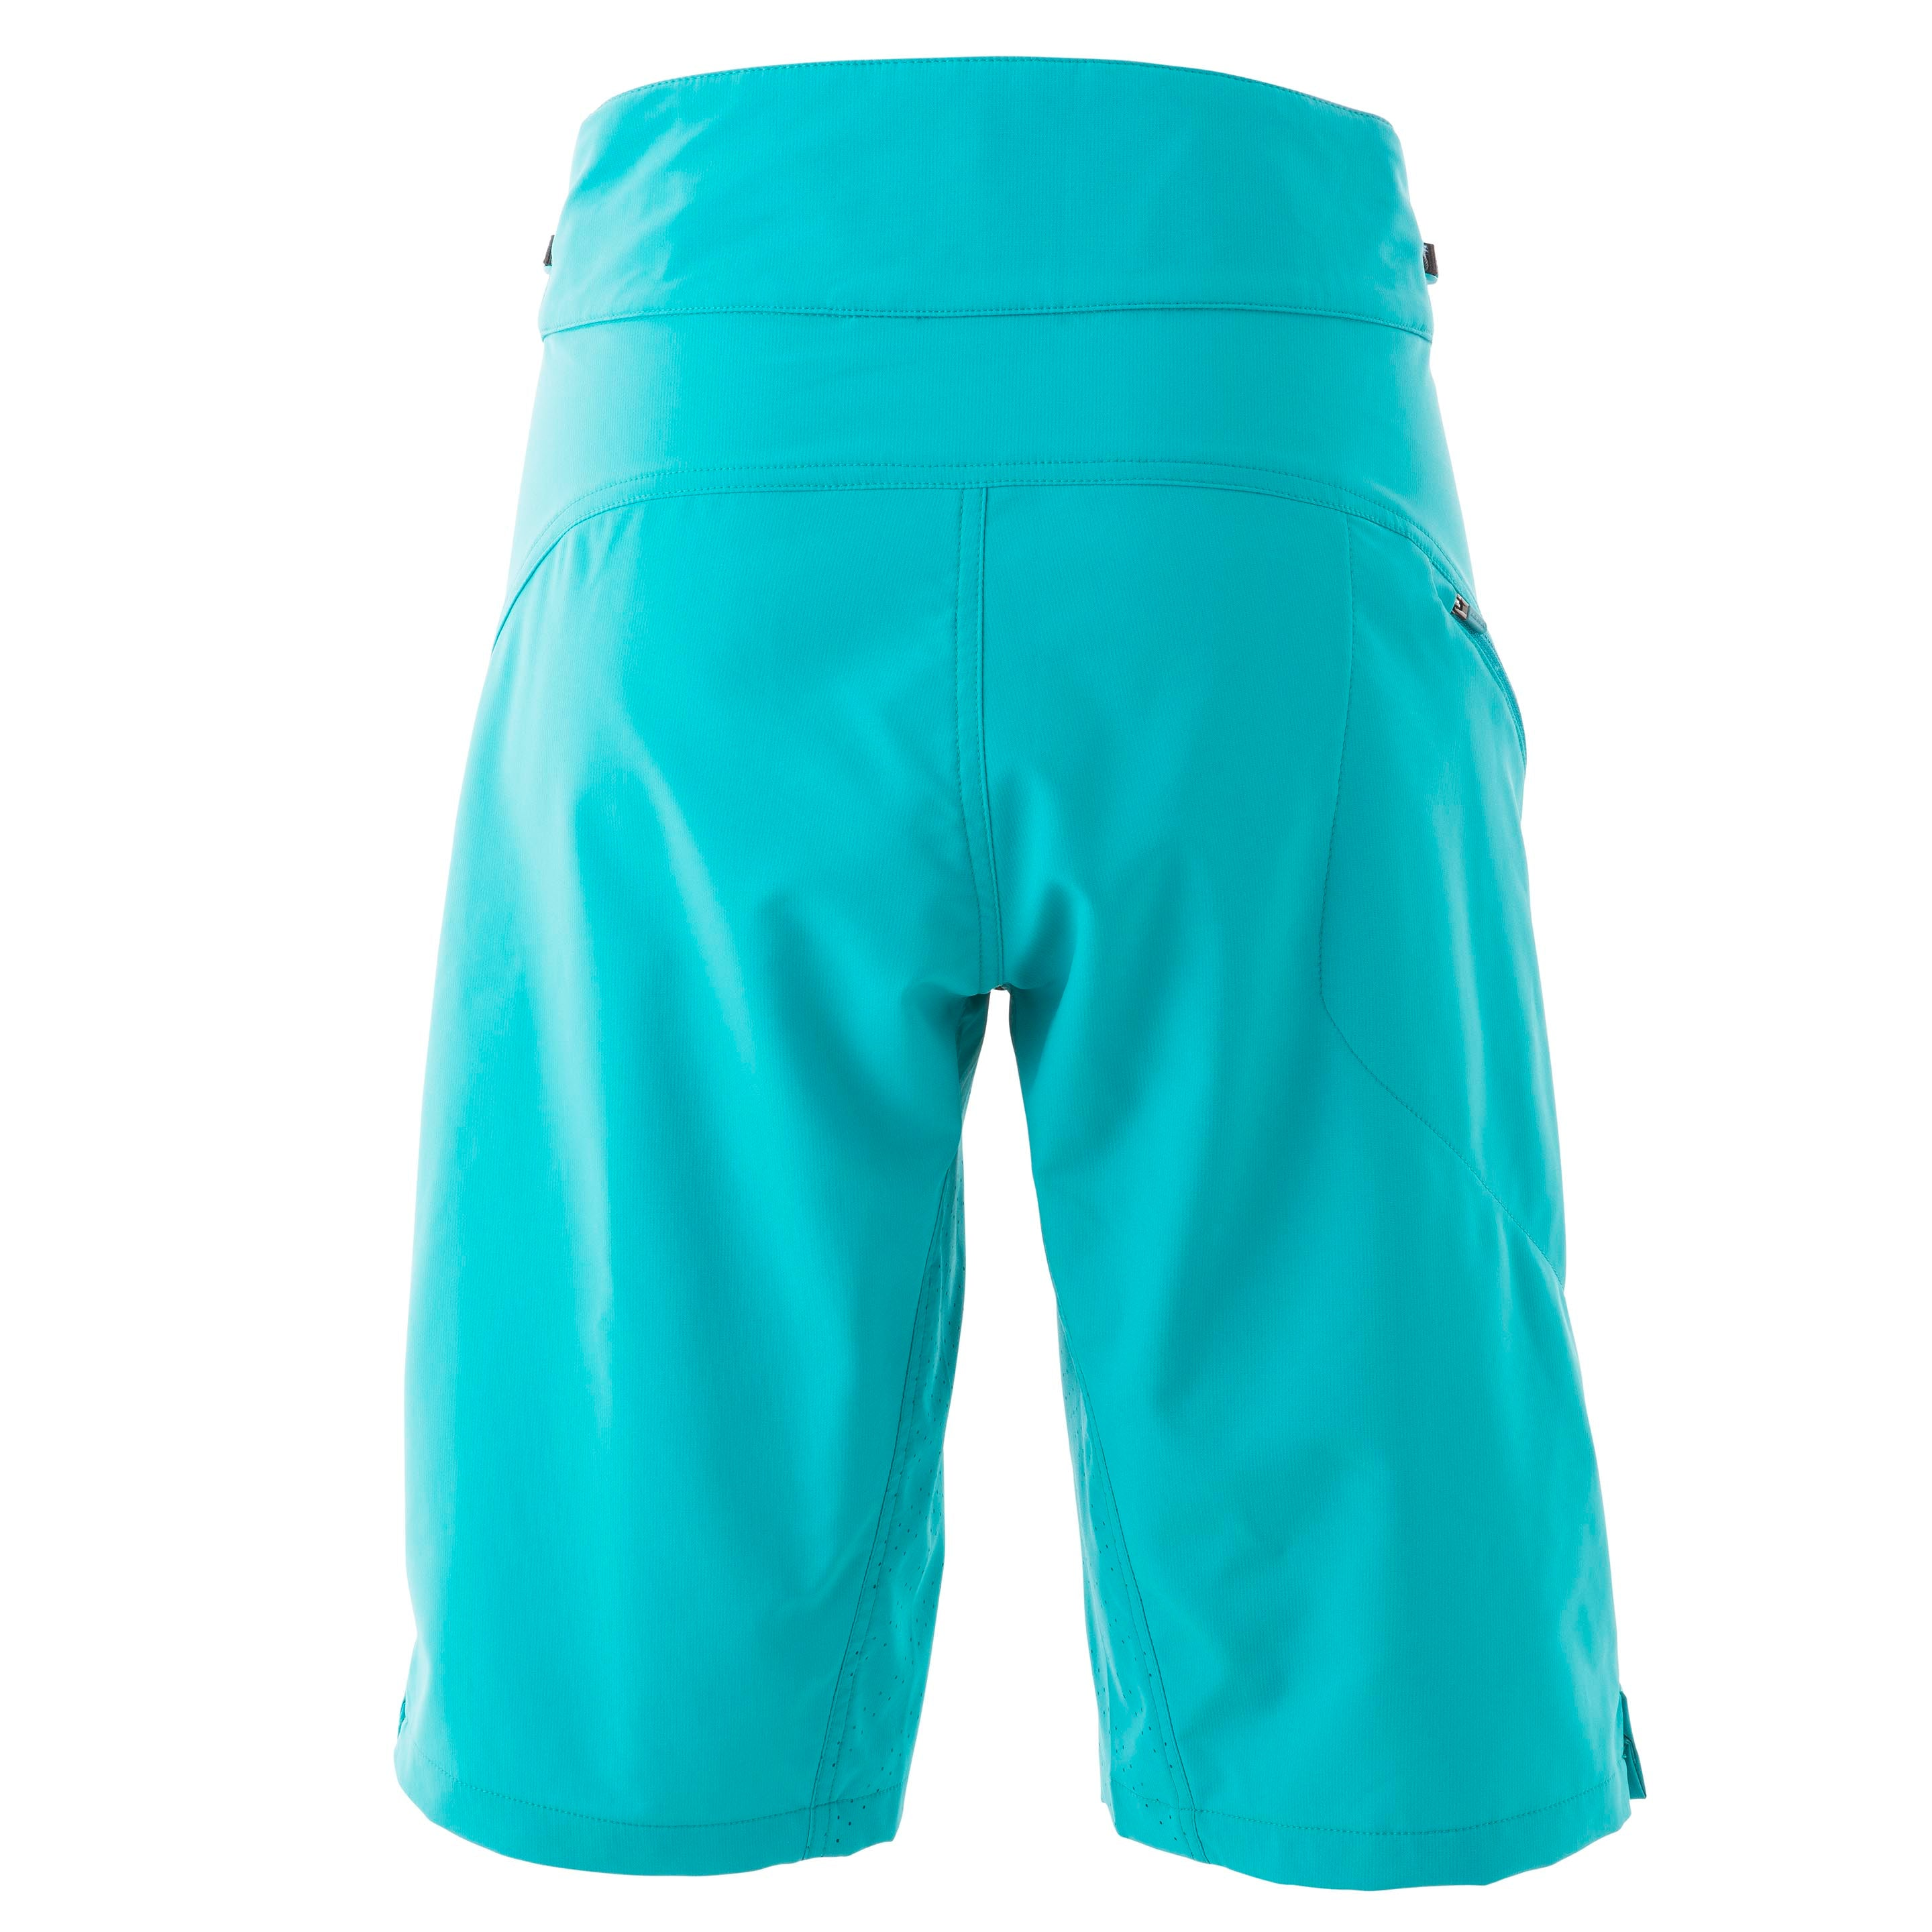 W'S ENDURO SHORT TU/ST 20